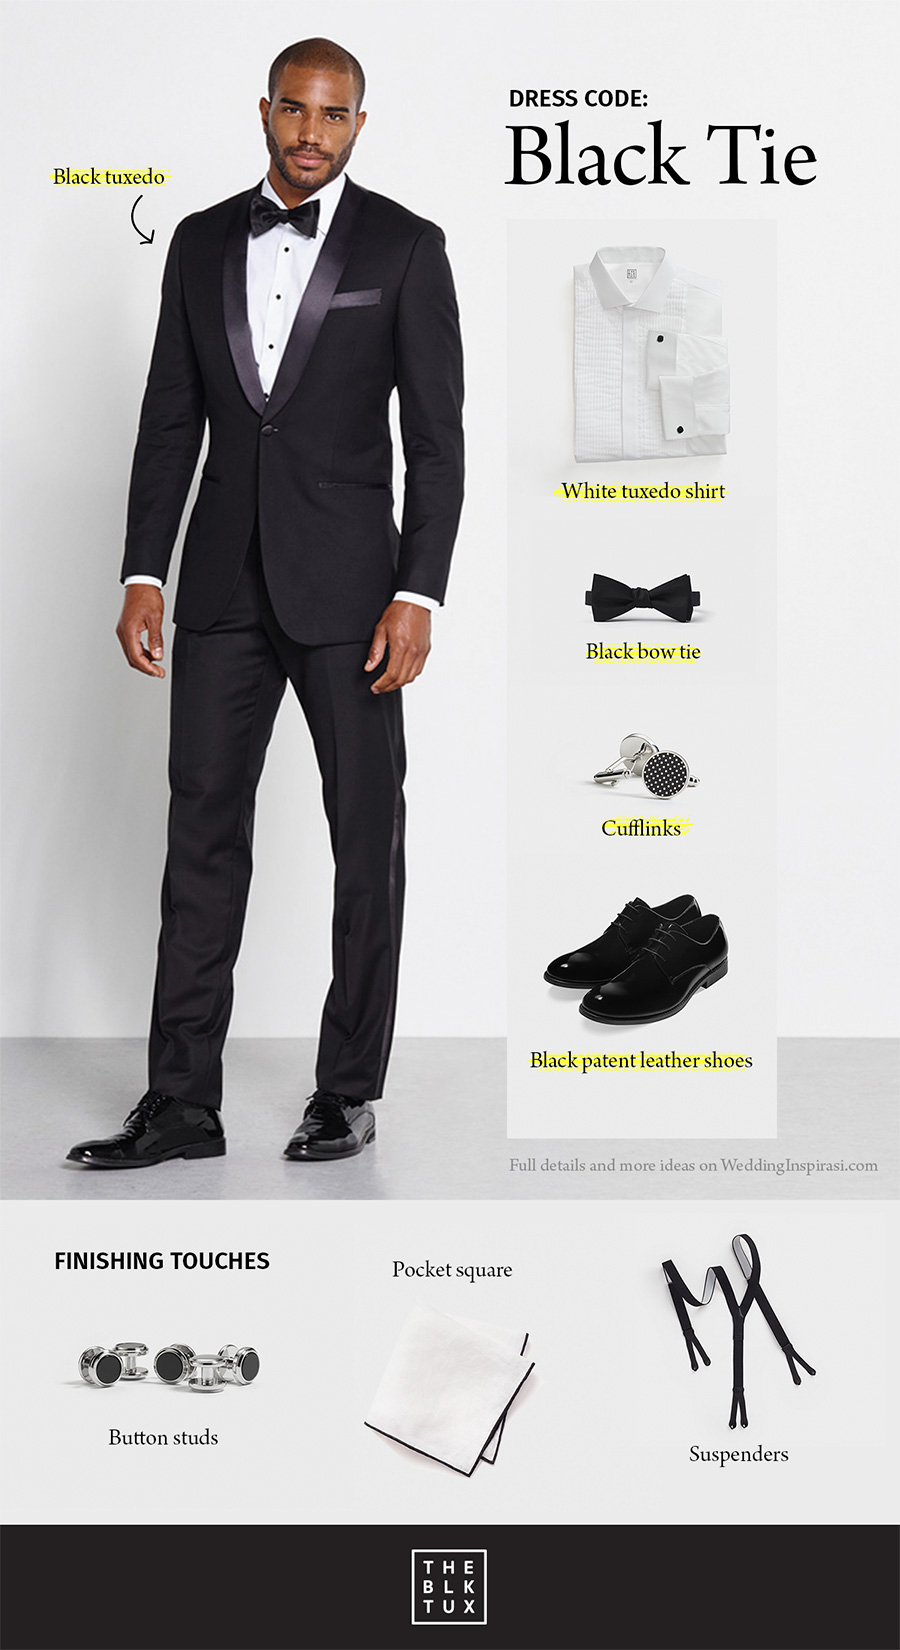 Decoding Dress Codes Get Smart With The Black Tux Wedding Inspirasi